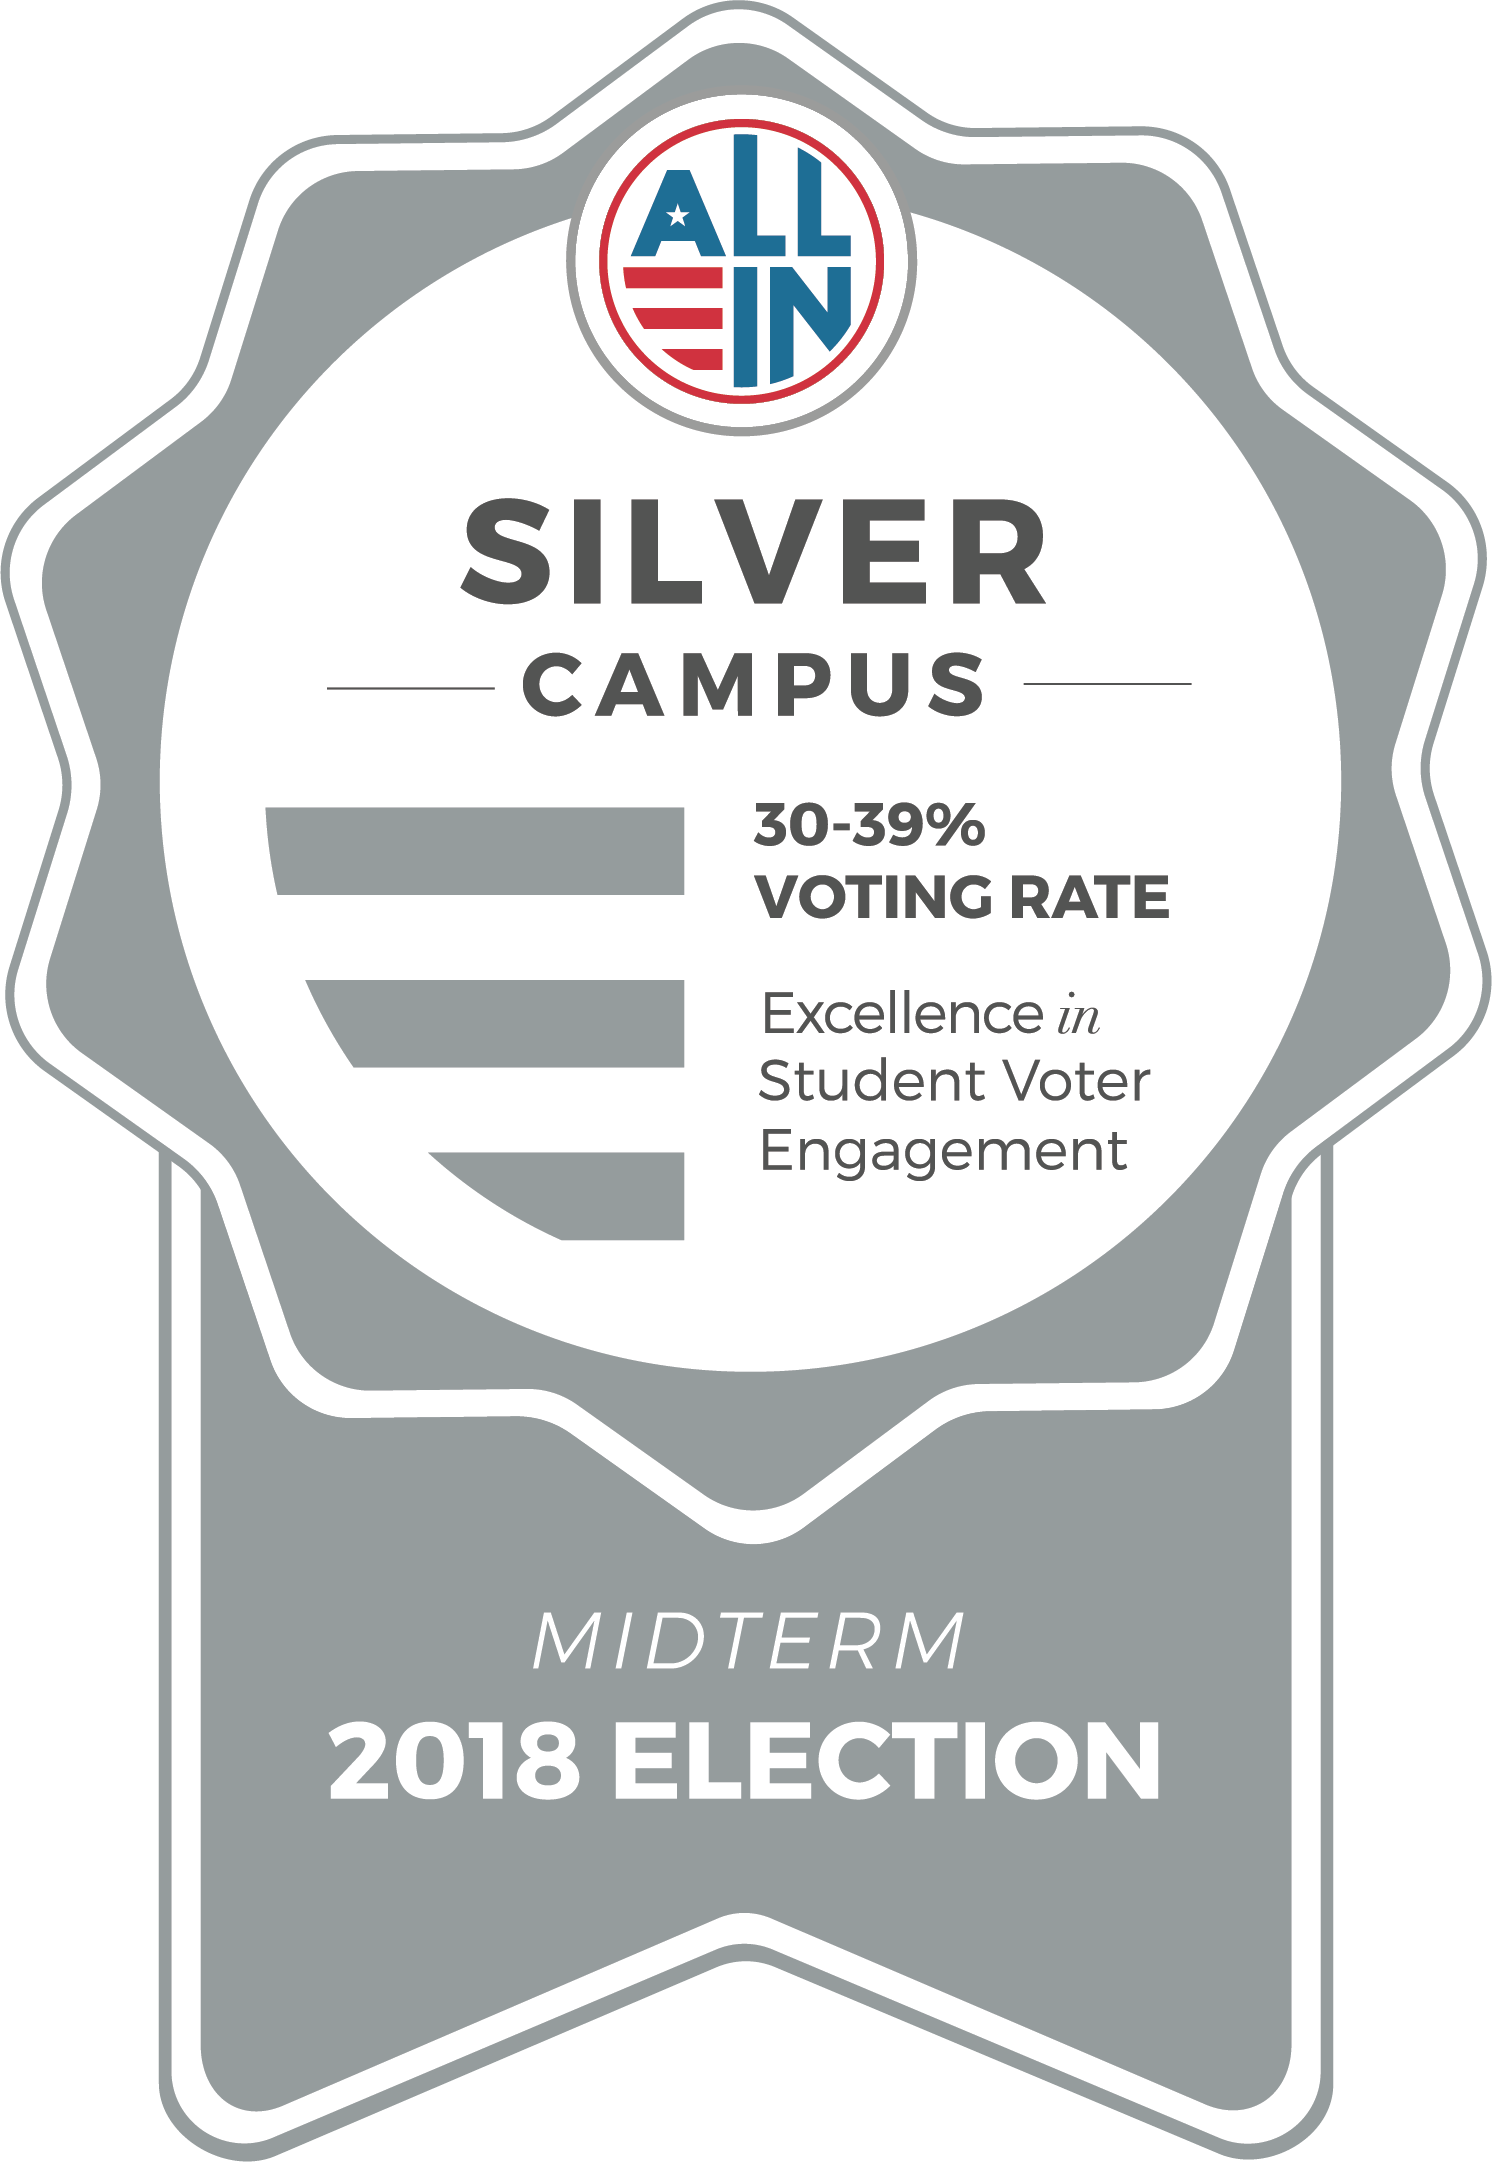 All In Silver Campus 30-39% voting rage. excellence in student voter engagement for the 2018 midterm election.